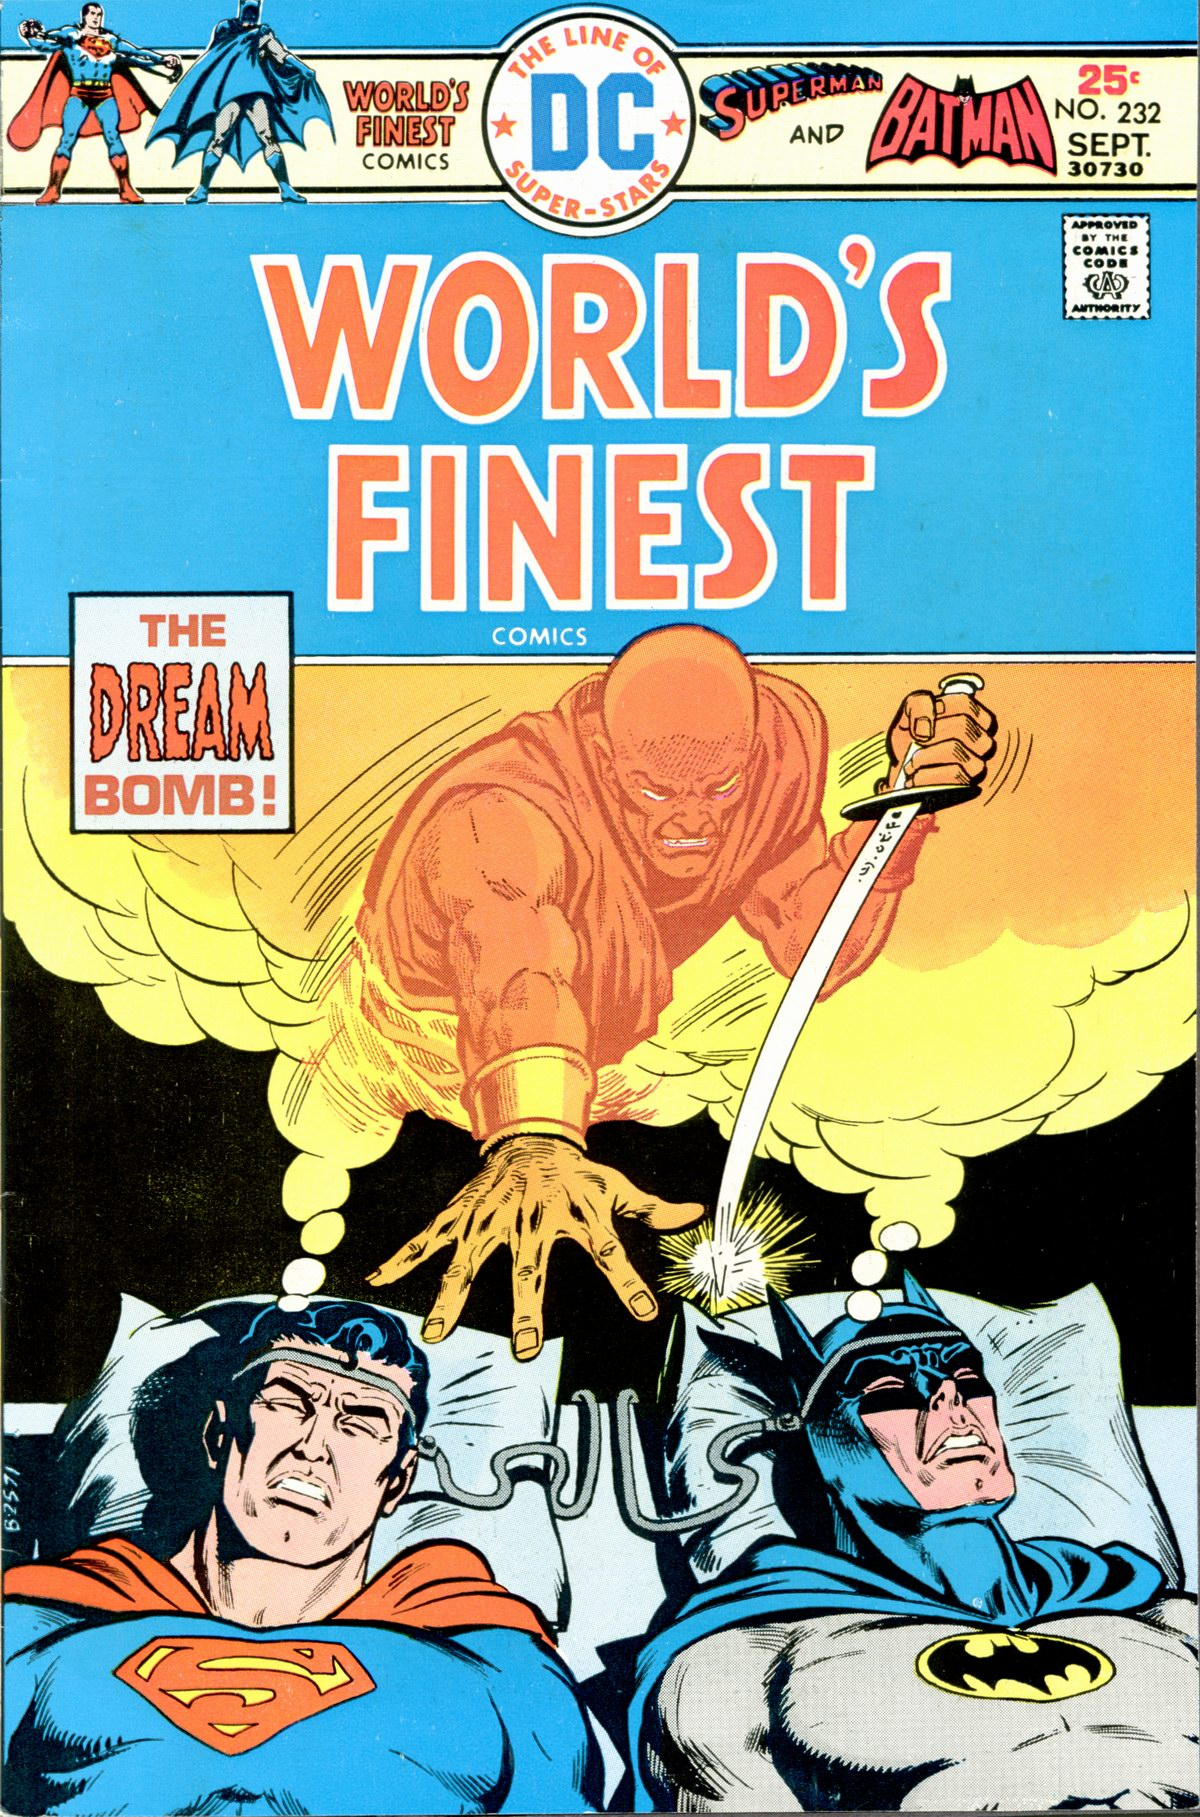 World's Finest Comics (1941) #232, cover penciled by Ernie Chan & inked by John Calnan.